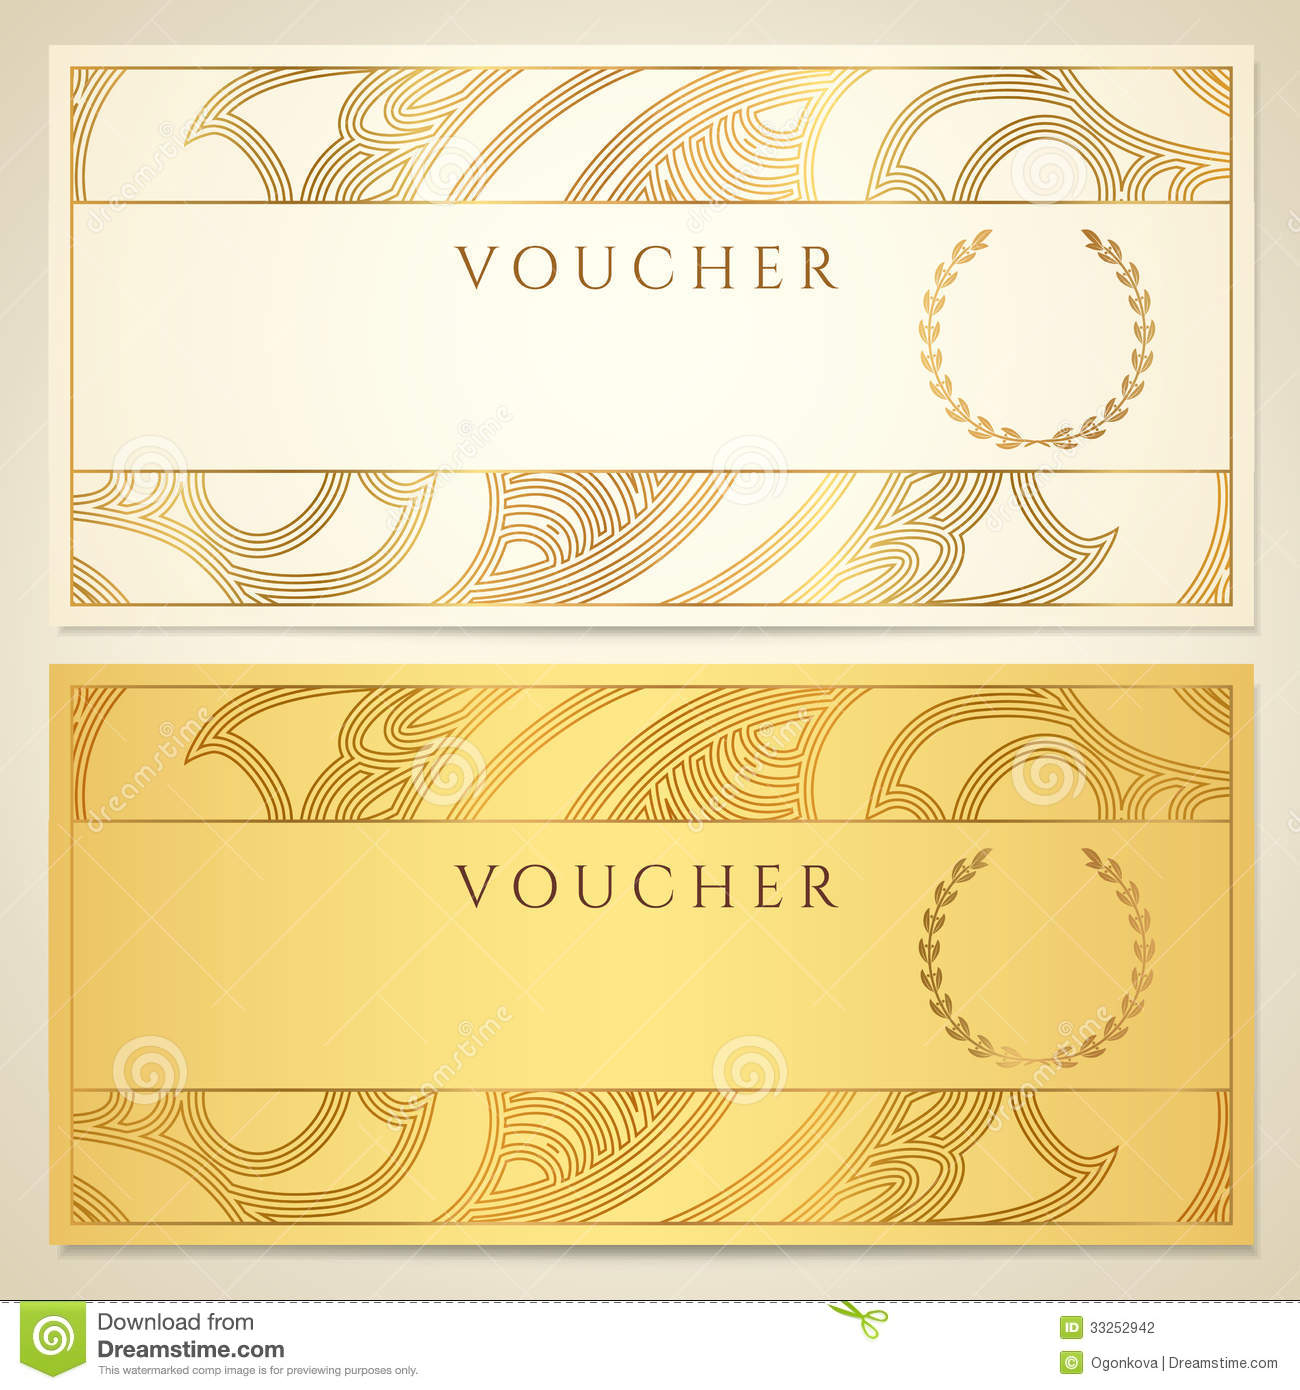 Voucher gift certificate coupon template stock photo image of voucher gift certificate coupon template royalty free stock photo yelopaper Images